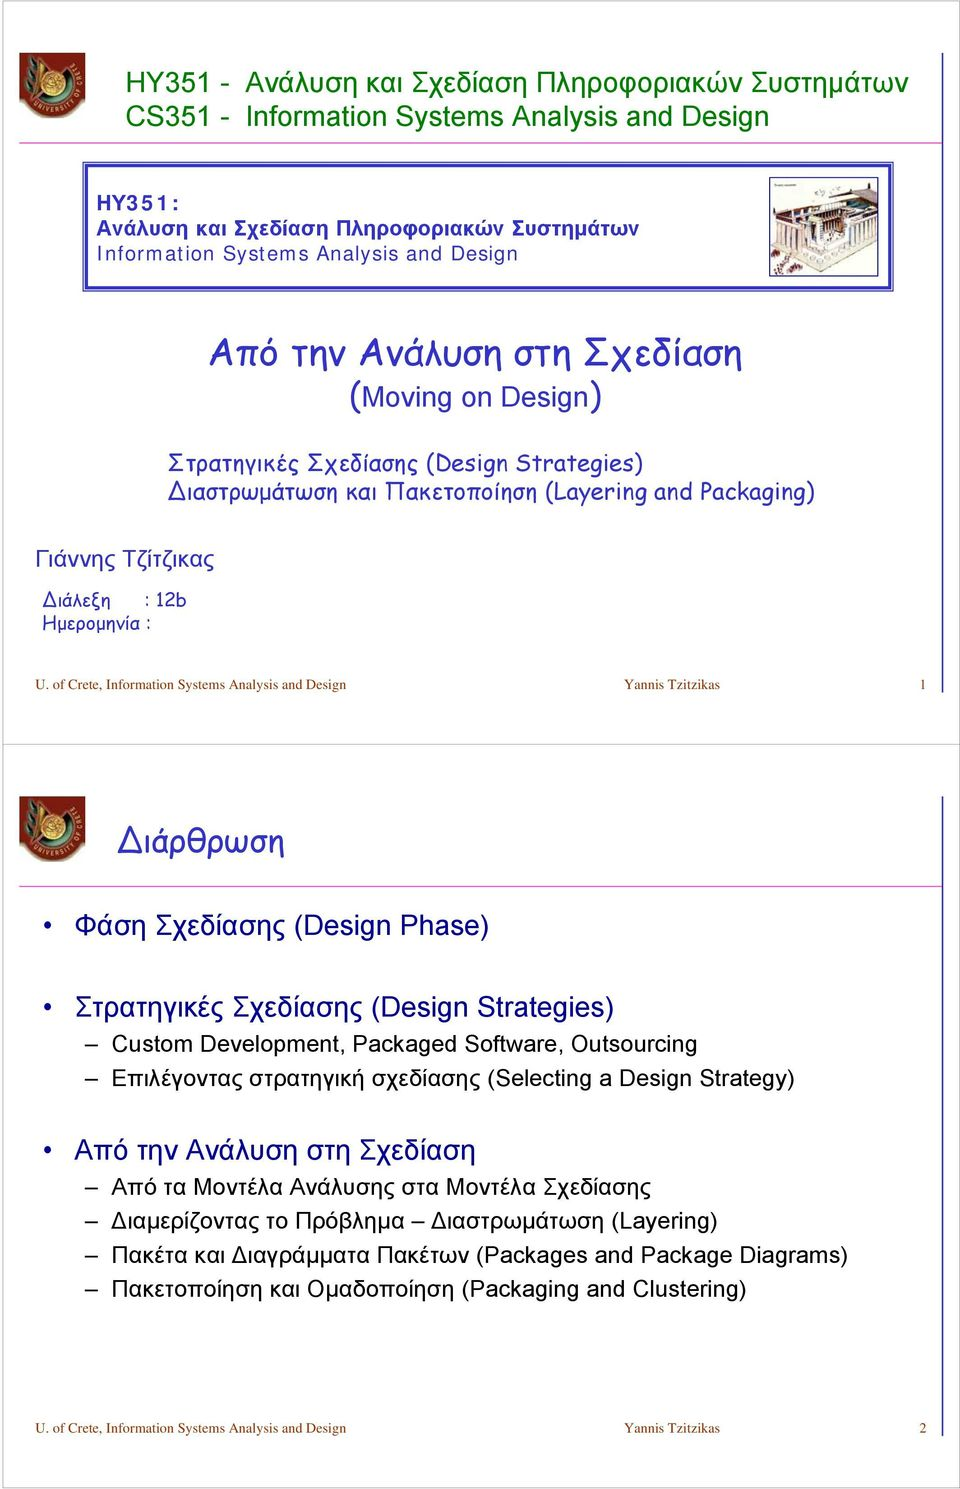 of Crete, Information Systems Analysis and Design Yannis Tzitzikas 1 ιάρθρωση Φάση Σχεδίασης (Design Phase) Στρατηγικές Σχεδίασης (Design Strategies) Custom Development, Packaged Software,